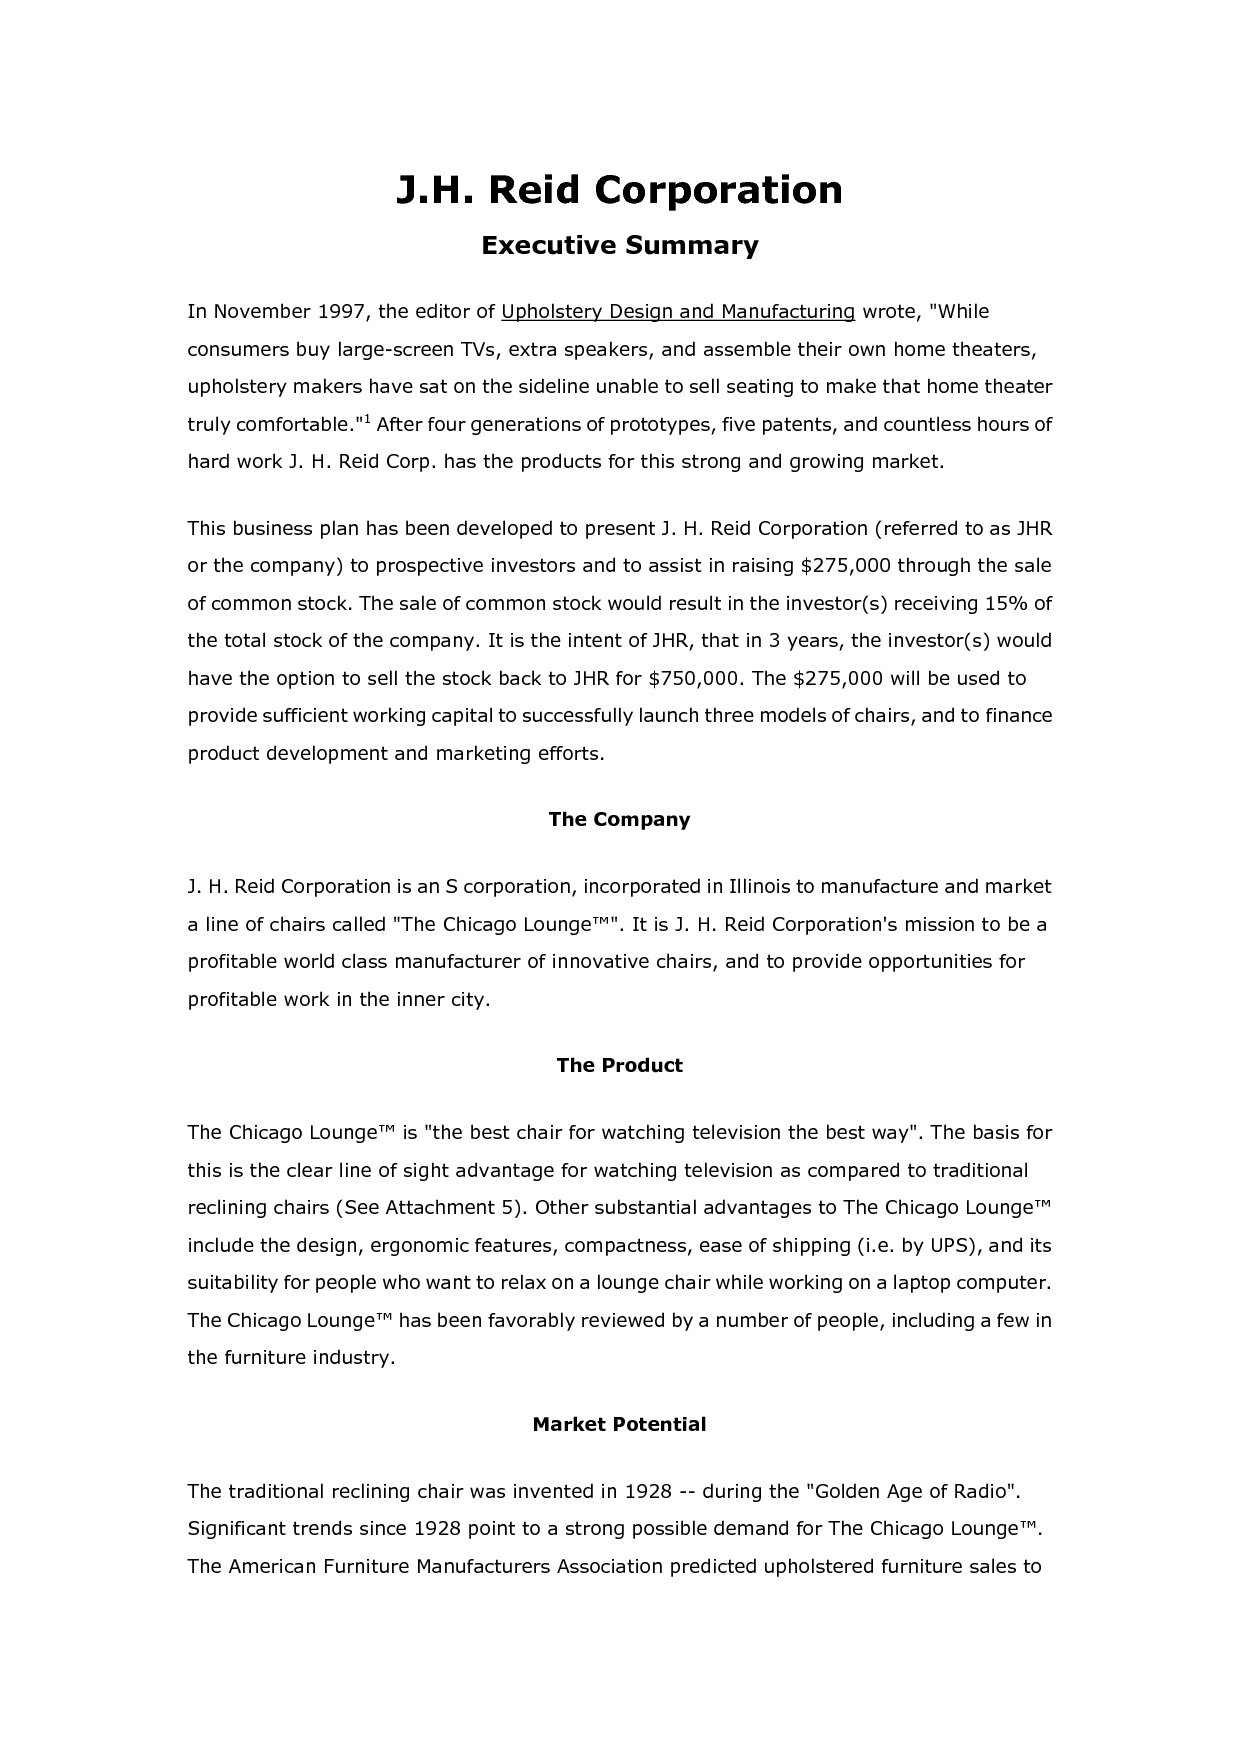 business sample papers sample proposal essay examples of a sample proposal essay examples of a proposal - Modest Proposal Essay Examples